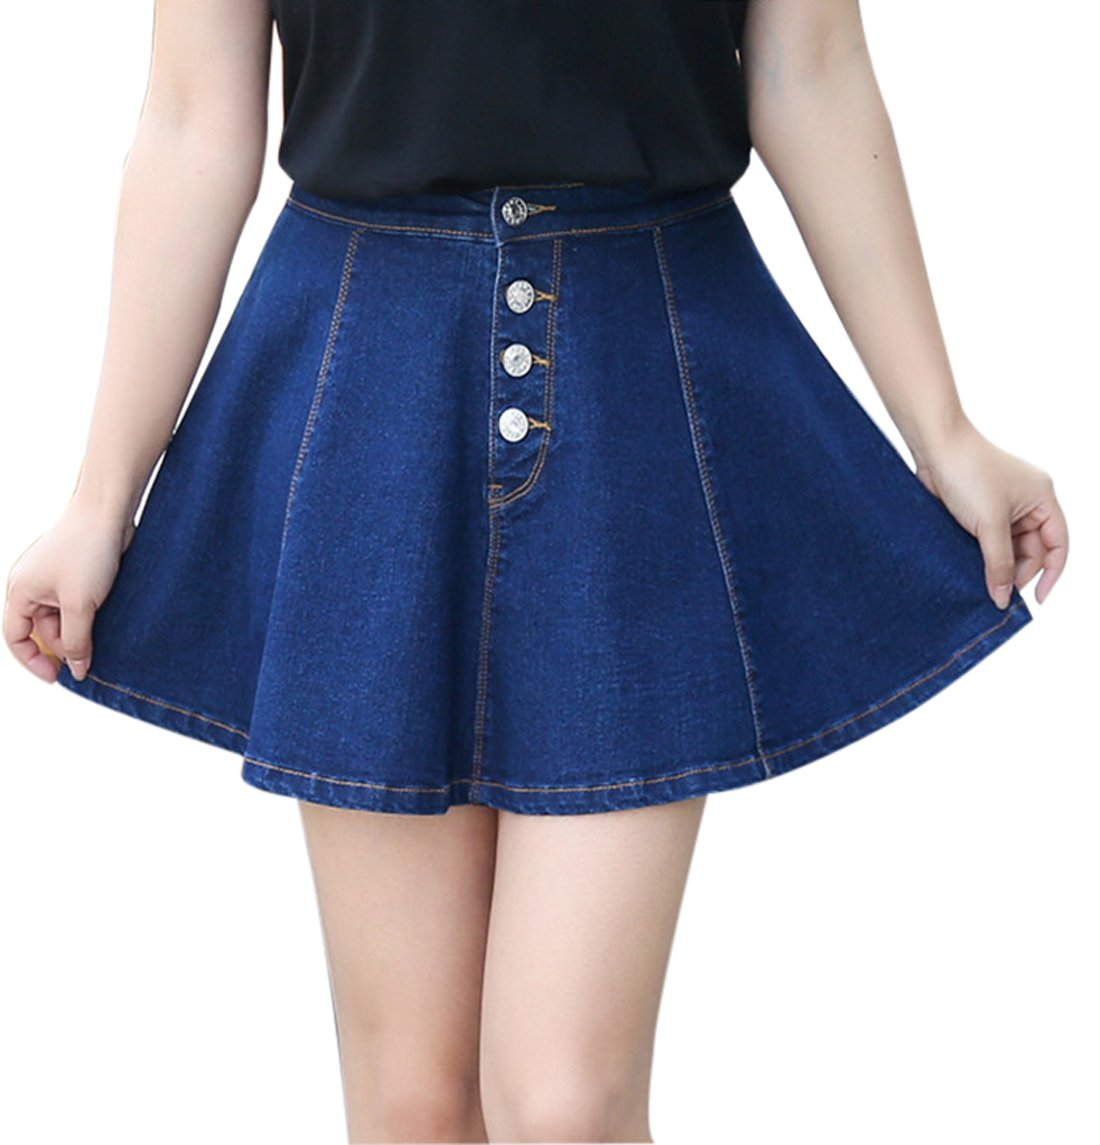 Gihuo Women's Casual Button Front Denim A-Line Pleated Short Denim Skirt Plus Size (L, Blue)